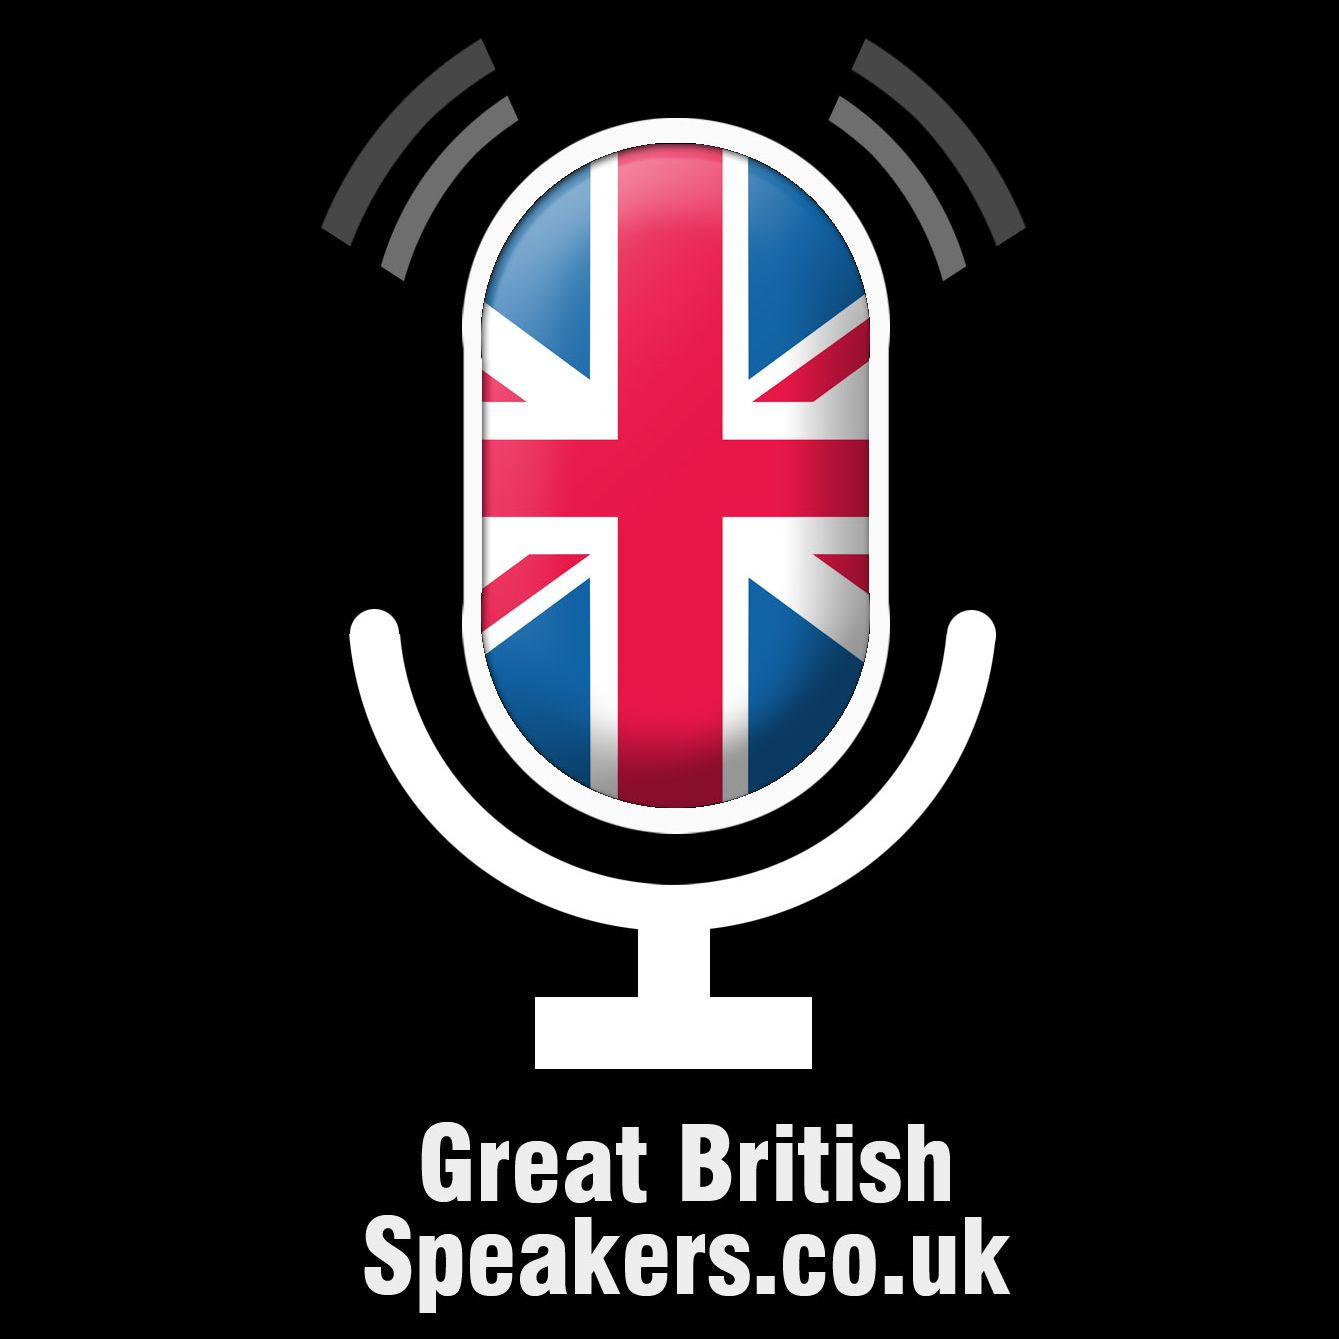 Great British Speakers